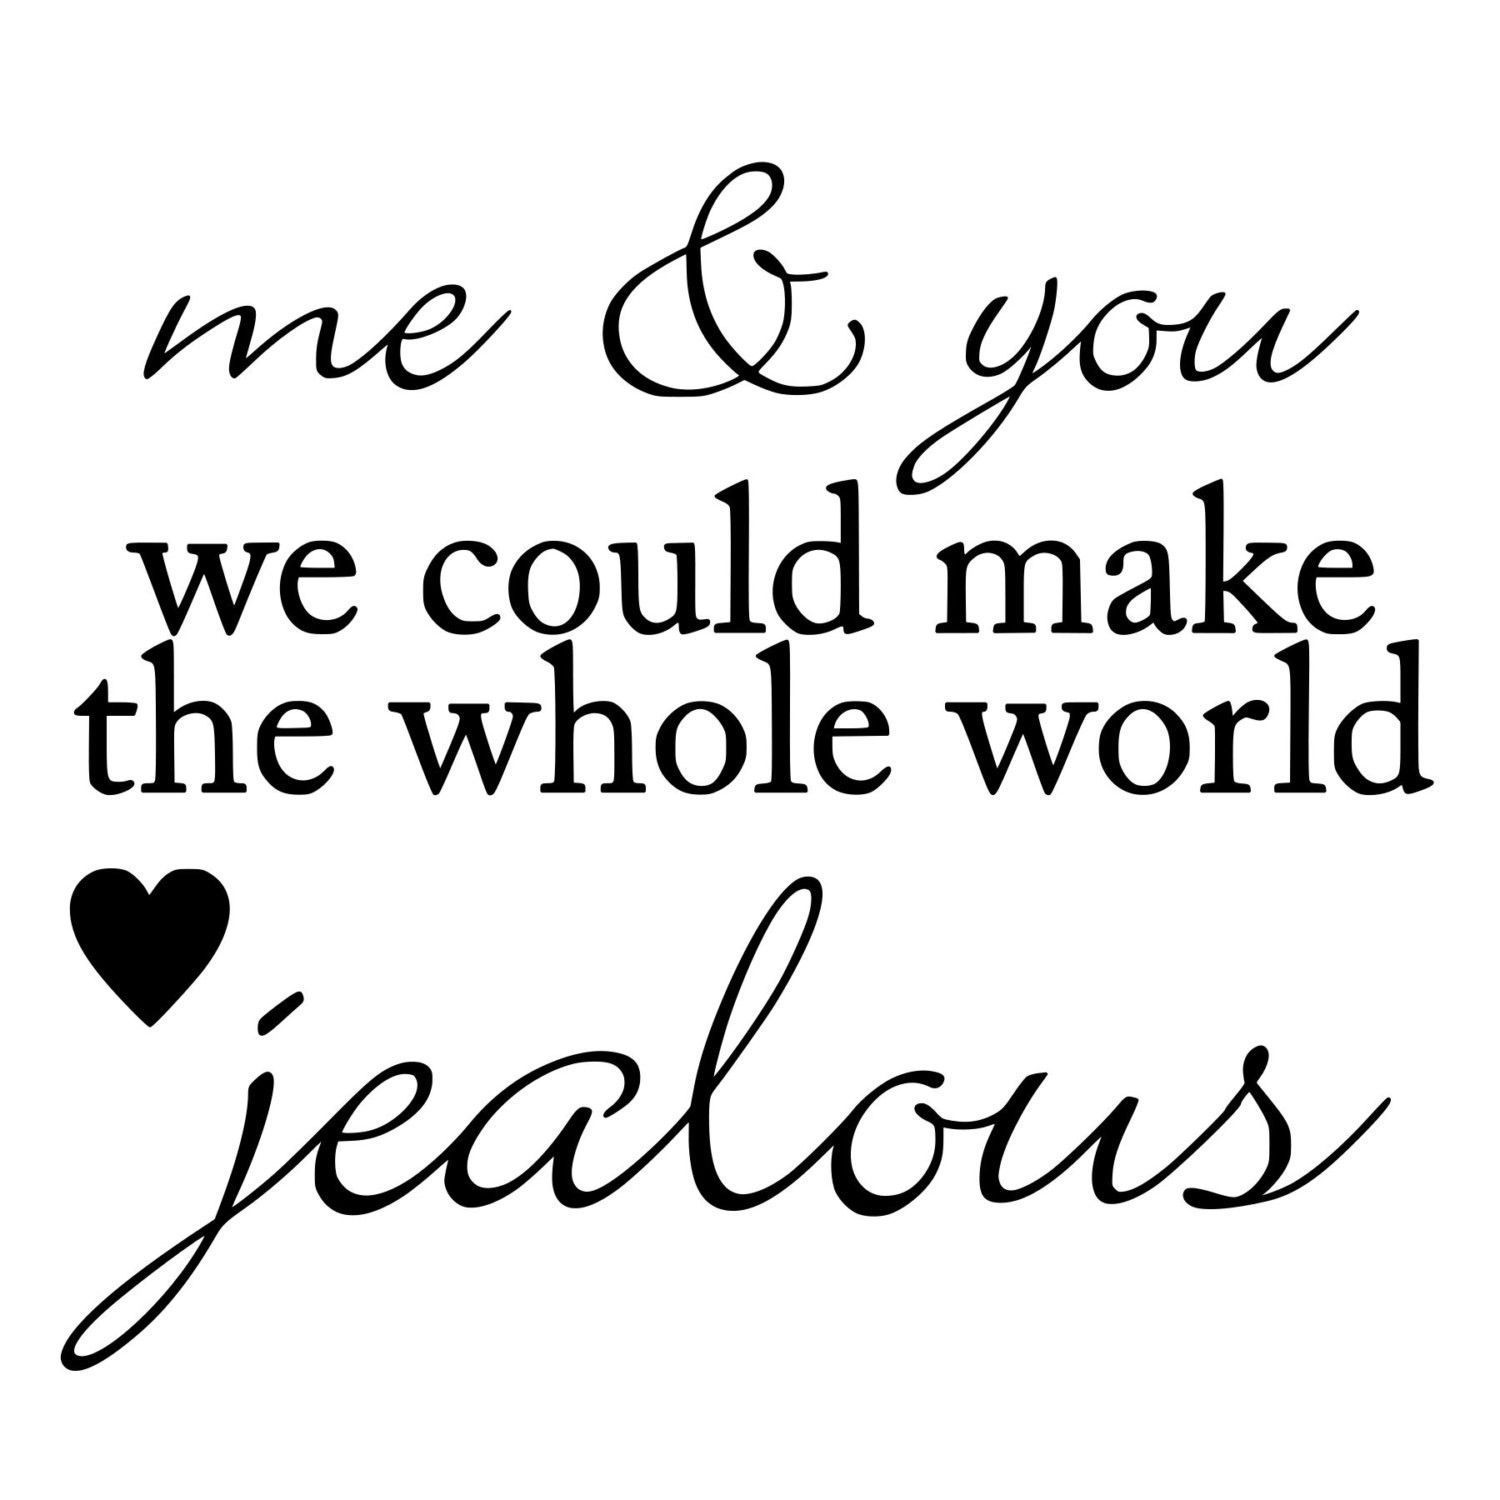 Me and you could make the whole world jealous